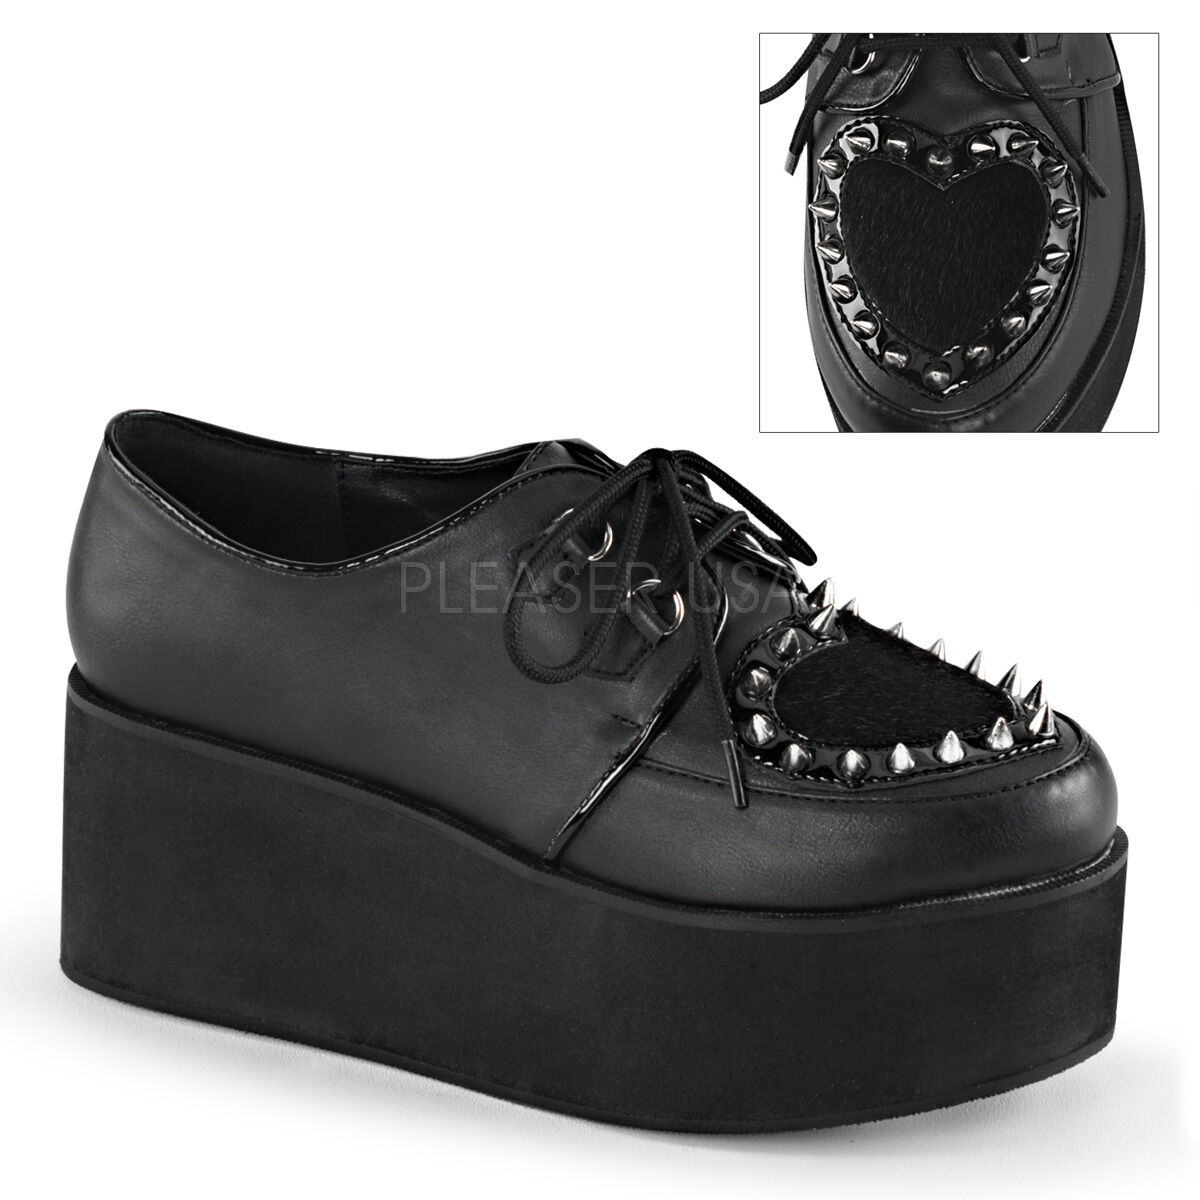 BIG SALE DEMONIA GRIP-02 Punk Goth Goth Punk Platform Studded Heart Creepers Schuhes New 11 96deb4